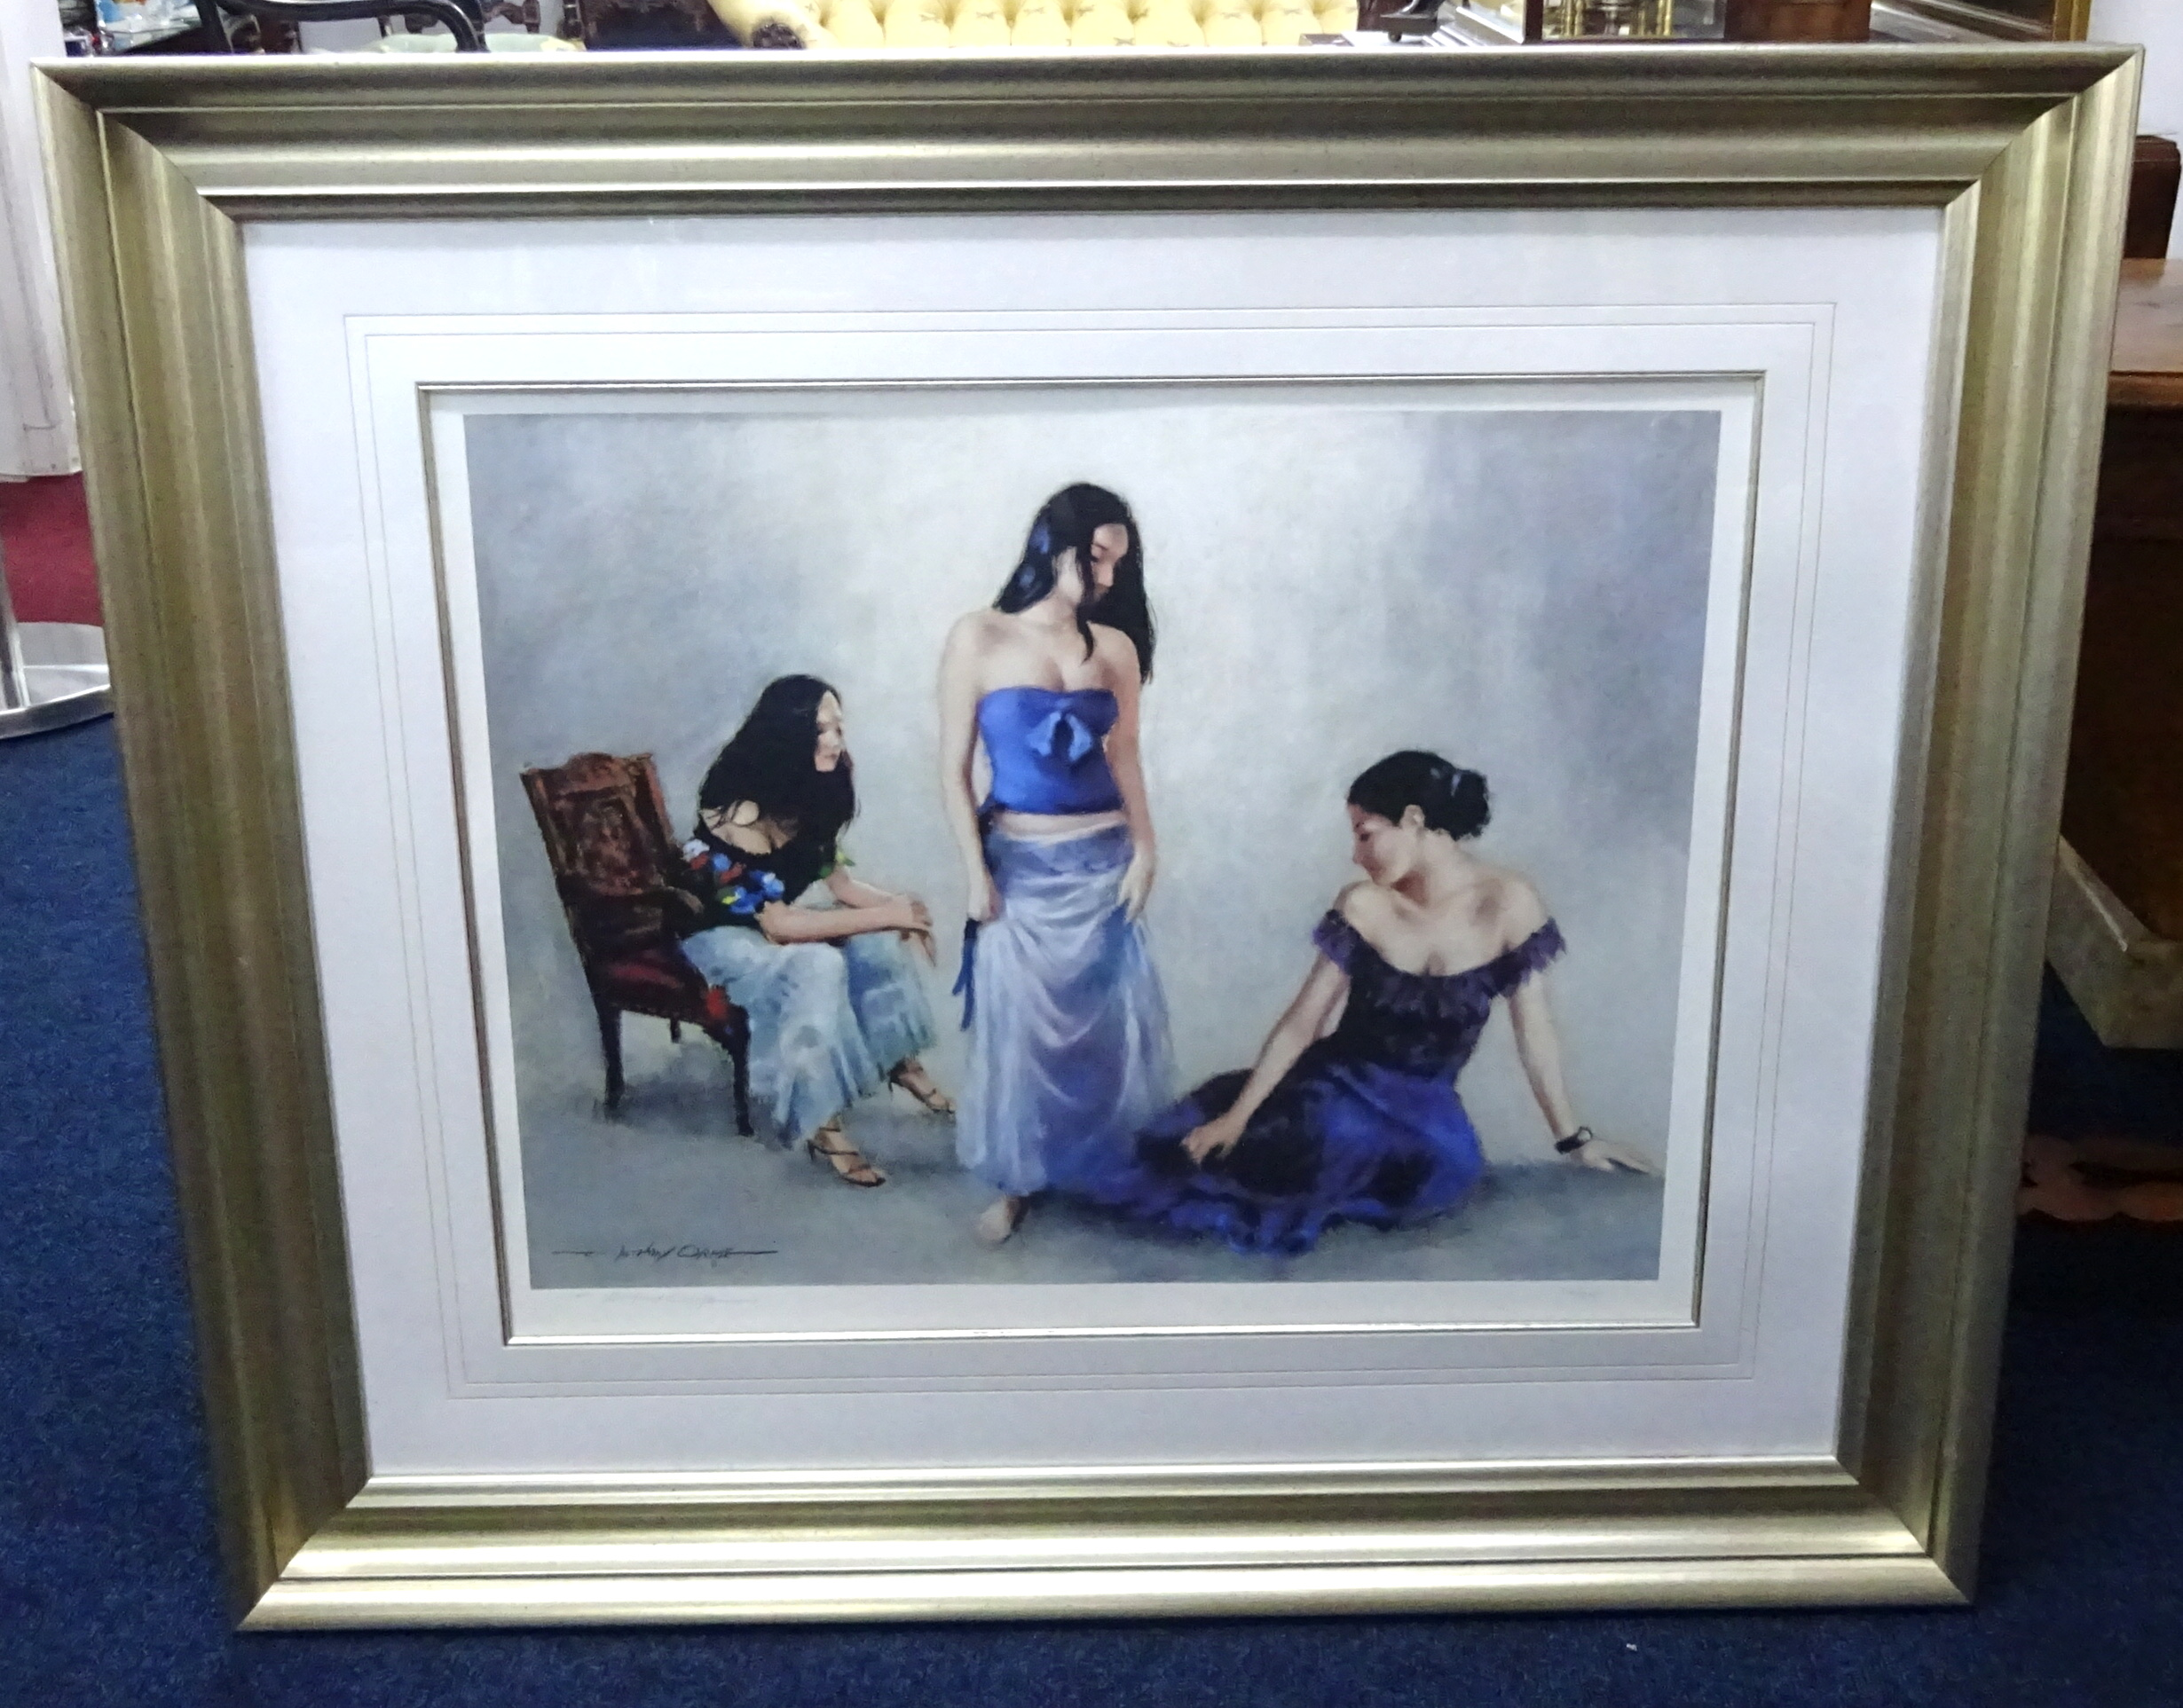 Lot 022 - Anthony Orme (b1945-), signed limited edition print, number 14/25, framed and glazed, 53cm x 58cm.